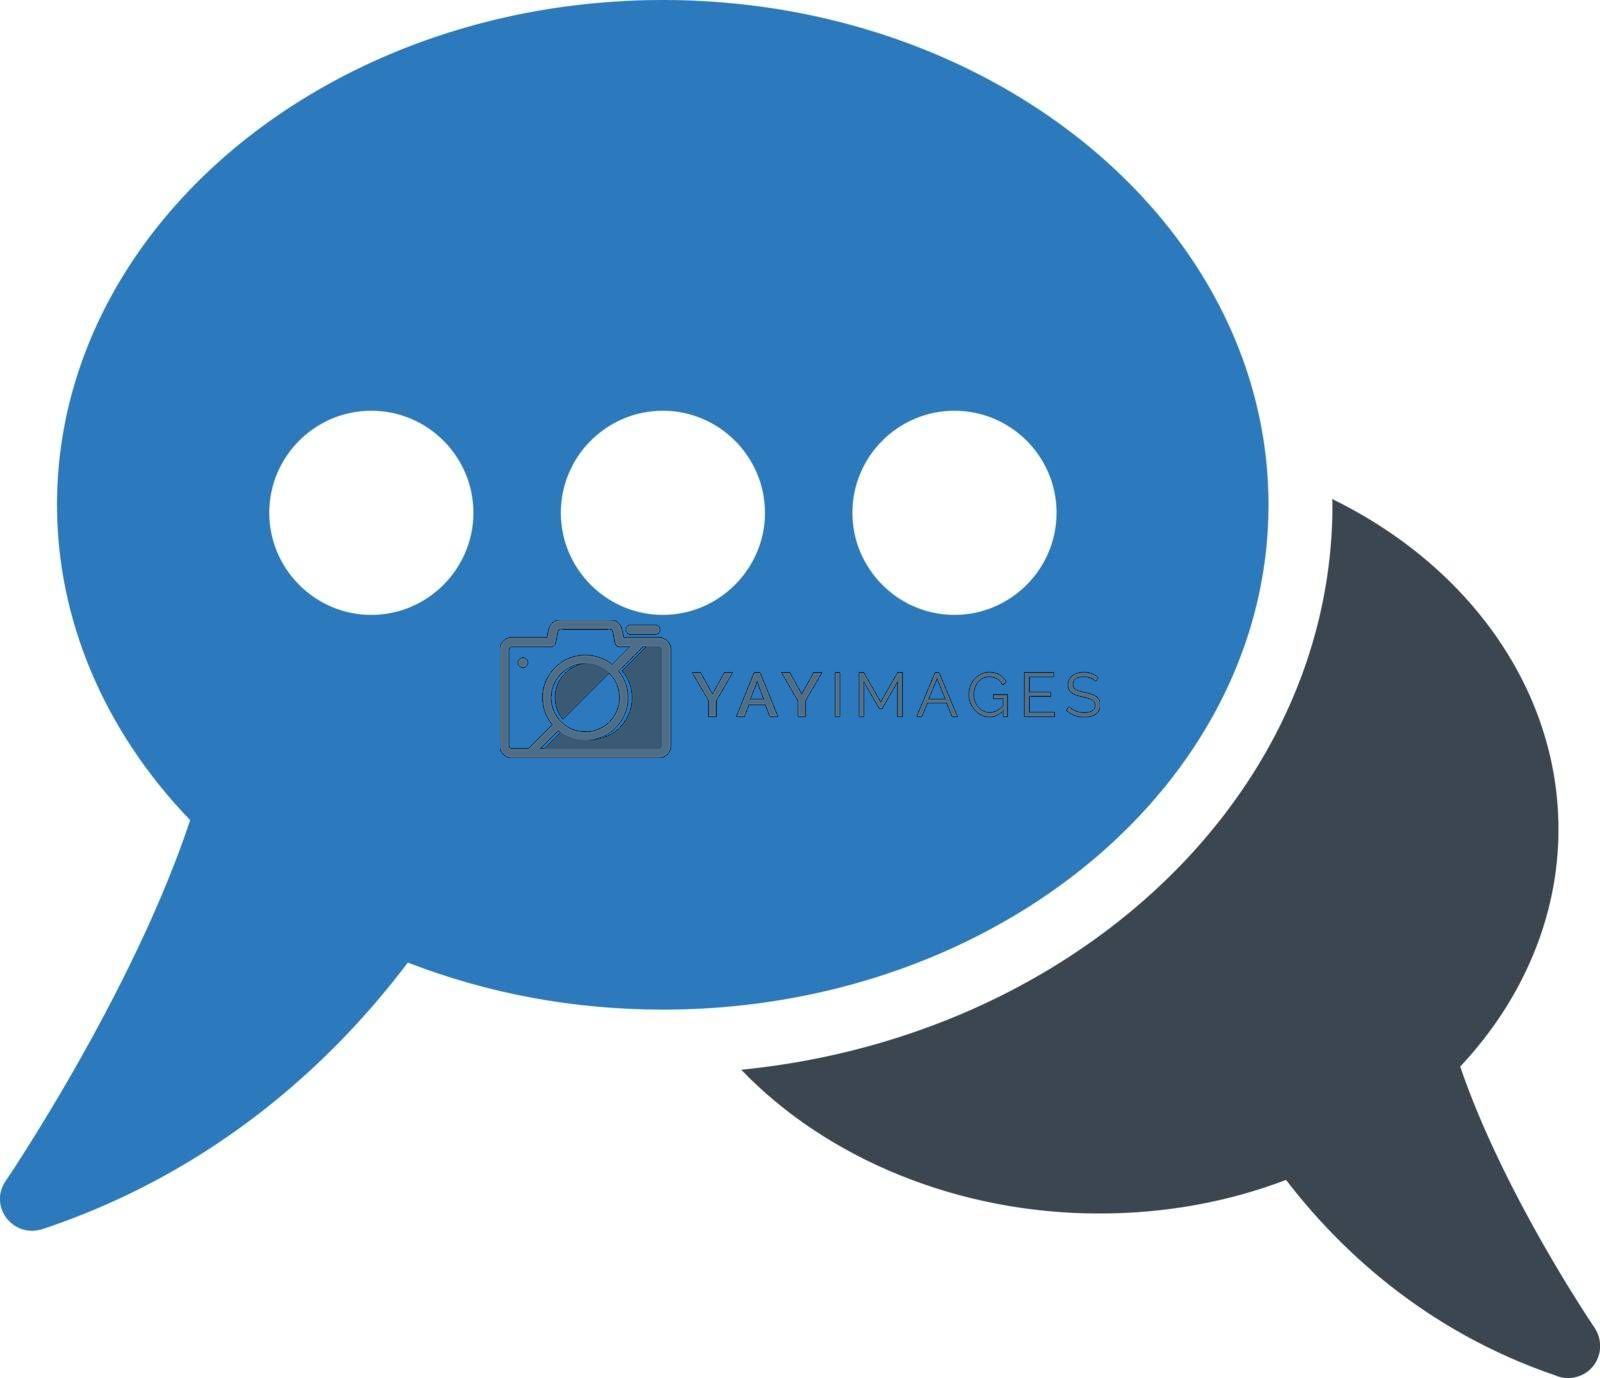 Royalty free image of communication  by vectorstall